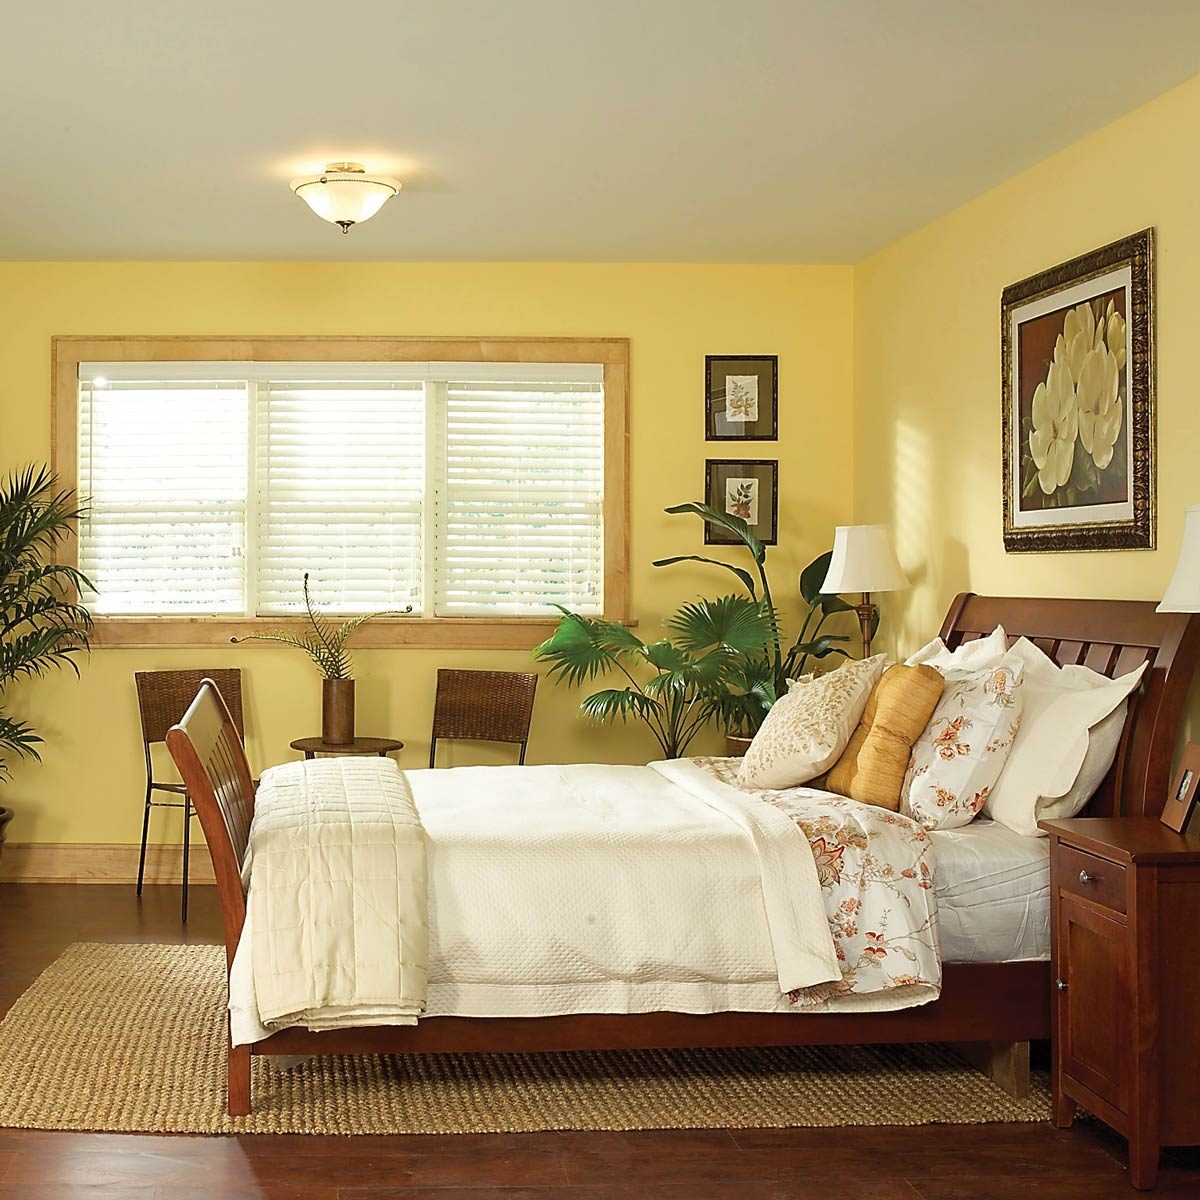 before remodel dated how to build a tray ceiling bedroom